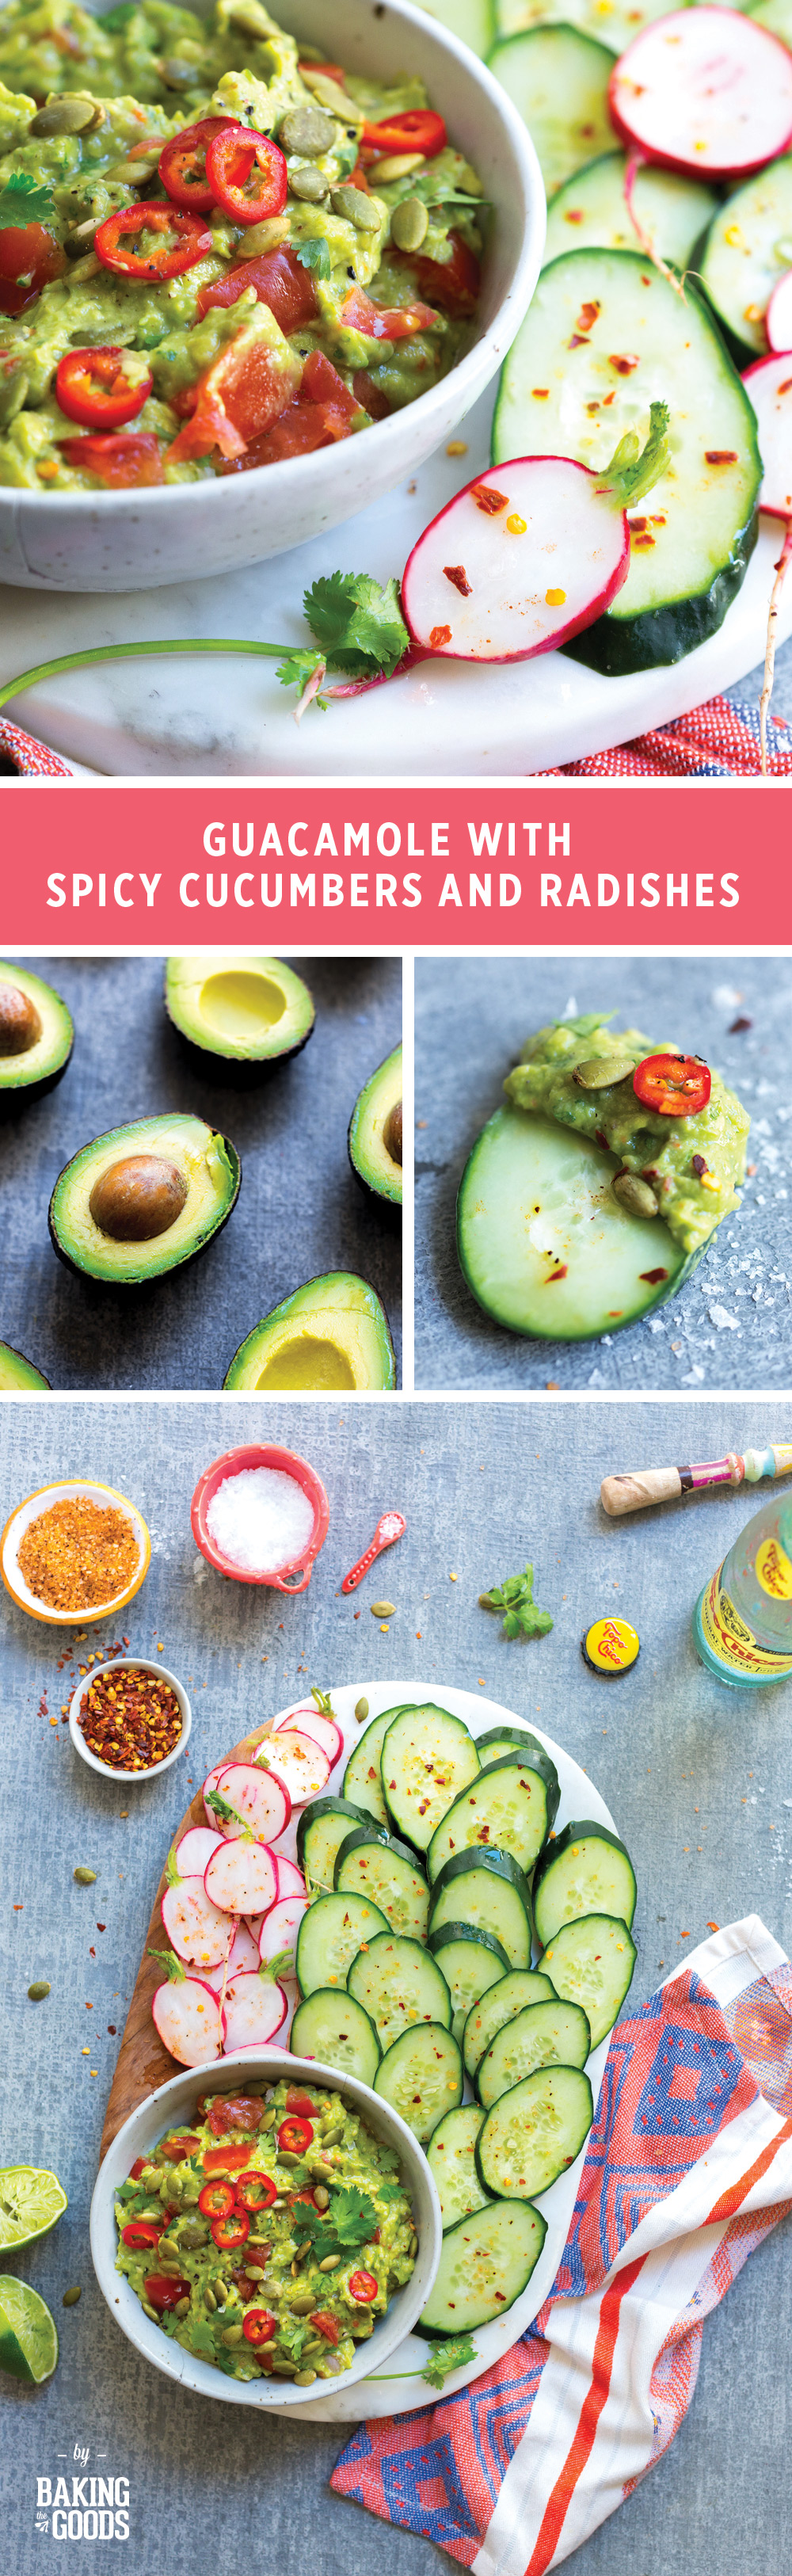 Guacamole with Spicy Cucumbers and Radishes by Baking The Goods.